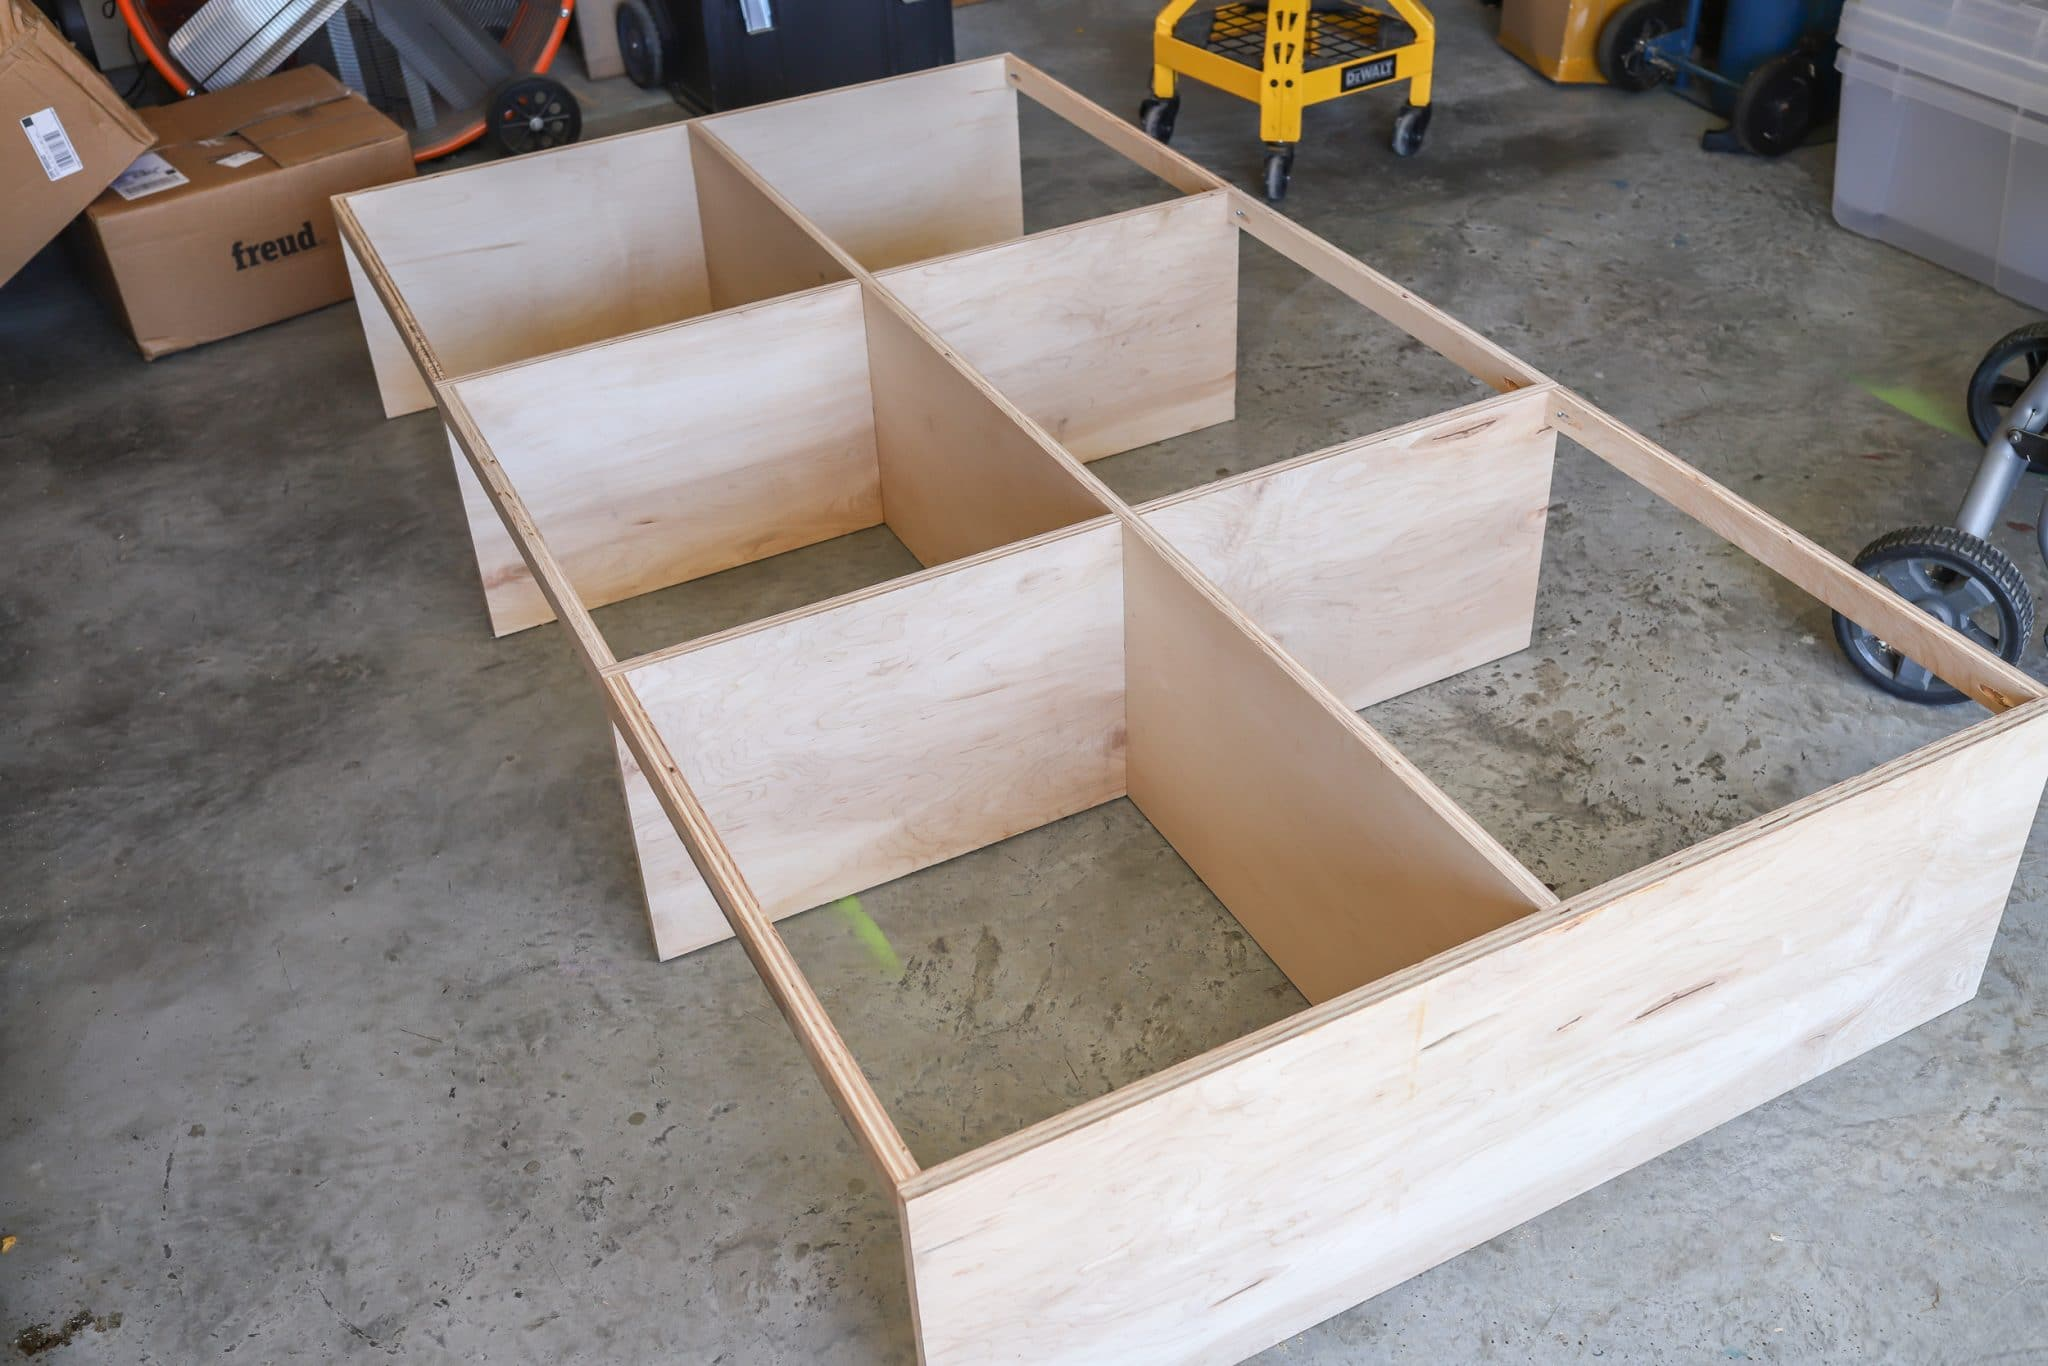 How to build a DIY Kids Platform Bed with Drawers